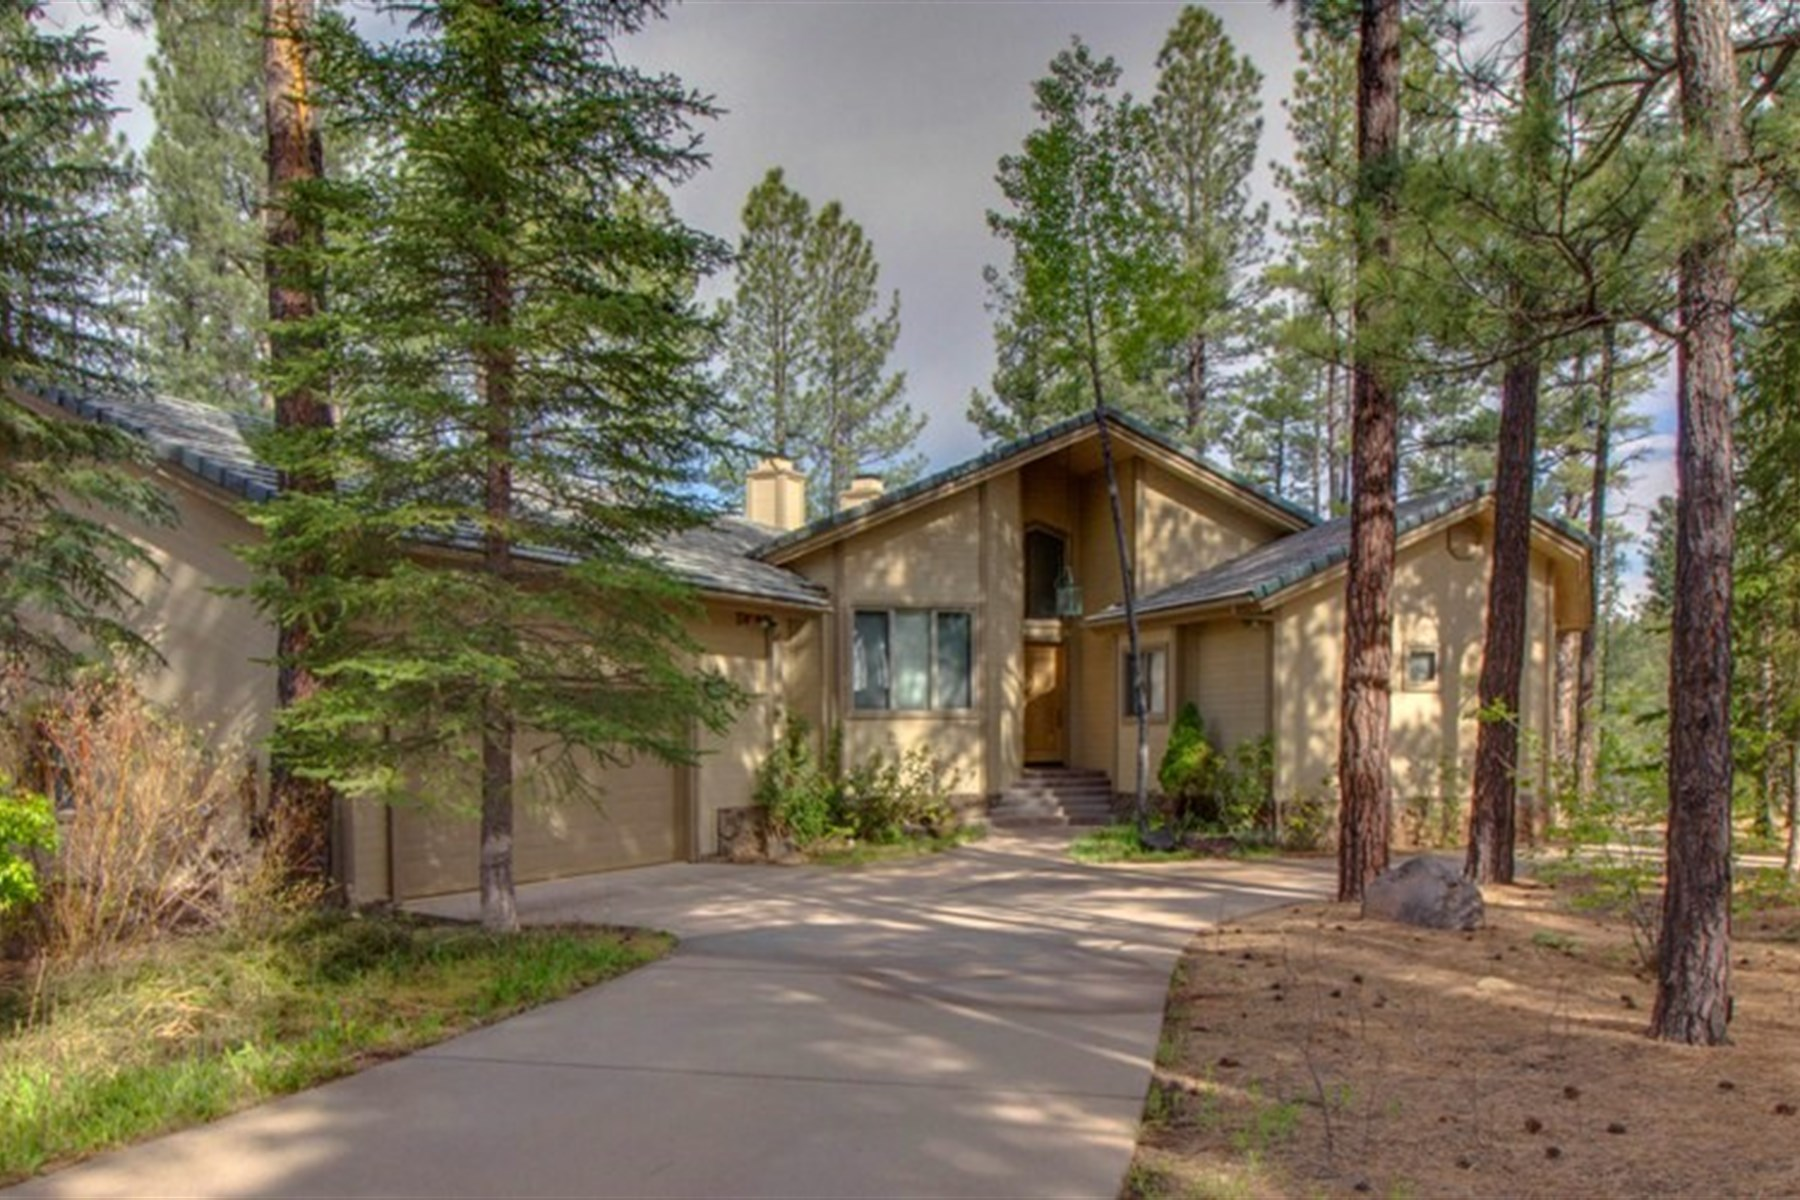 一戸建て のために 売買 アット Backing National Forest with stunning San Francisco Peak. 2034 William Palmer Flagstaff, アリゾナ 86005 アメリカ合衆国